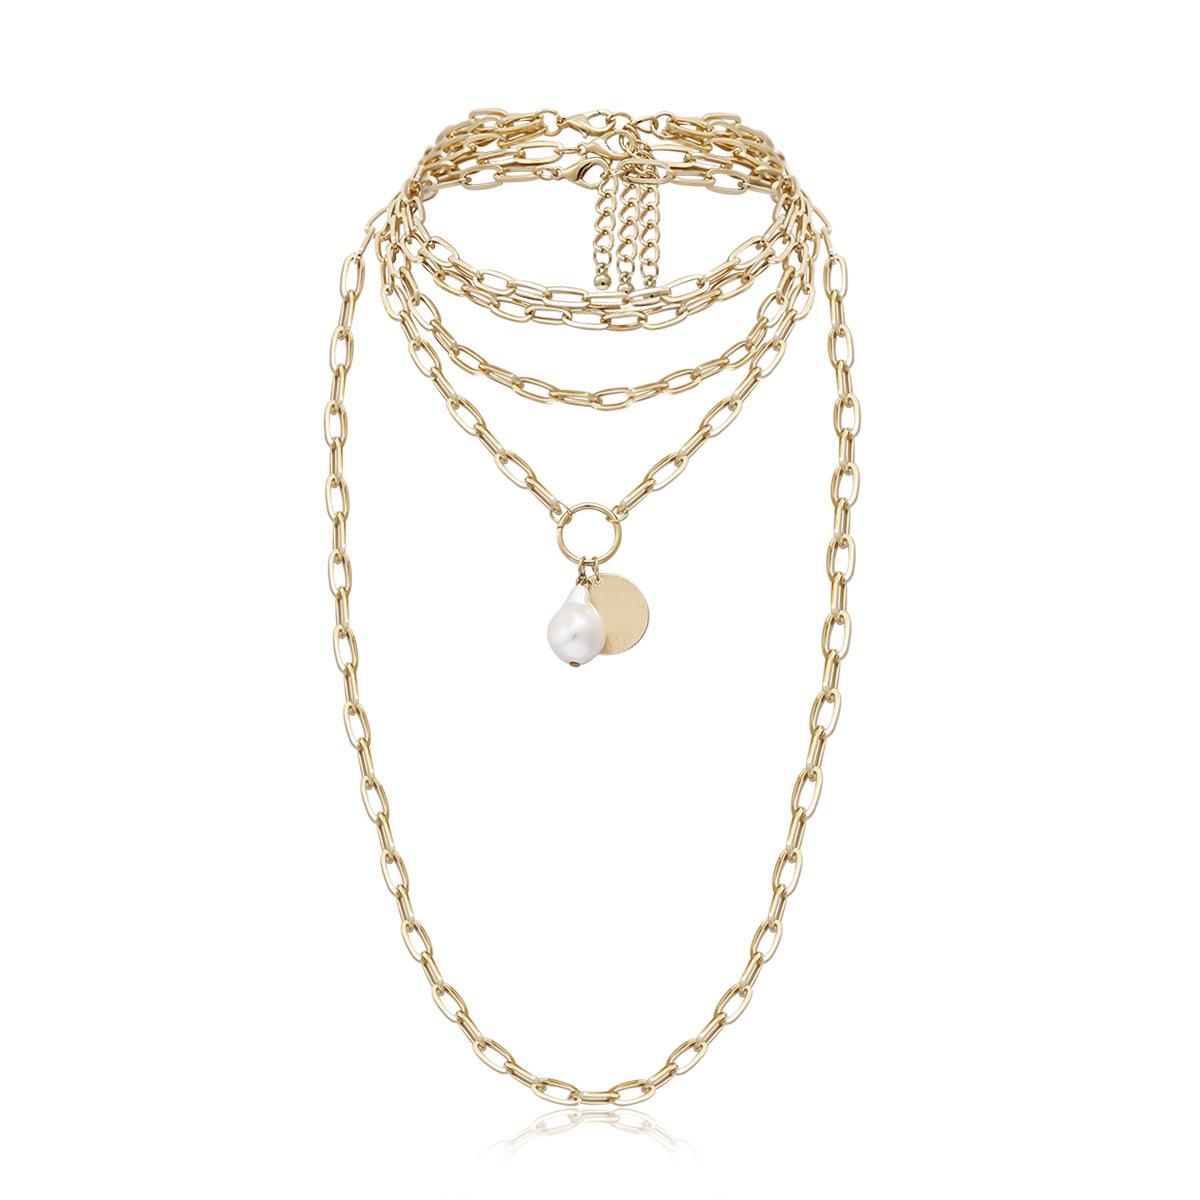 Imitation Pearl Pendant Necklaces for Women Gold Color Multilayer Chain Choker Layered Necklace Female 2020 Fashion Jewelry